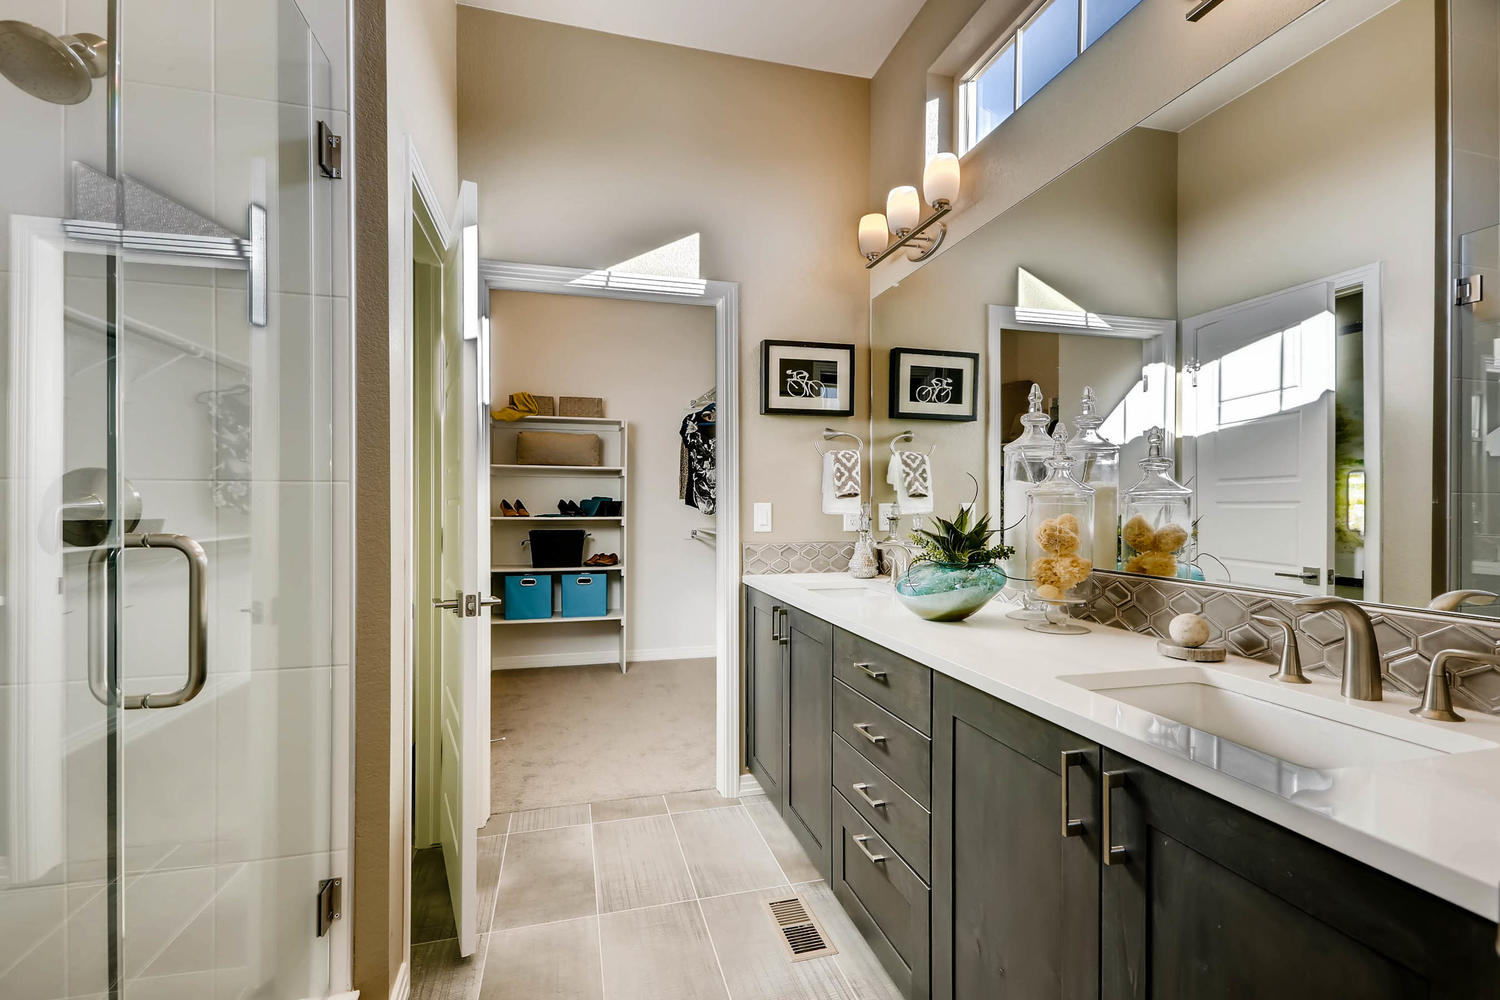 The Possibilities Series Of Low Maintenance Ranch Patio Homes Means Less  Time On Yard Work And Home Repairs, And More Time Doing ...